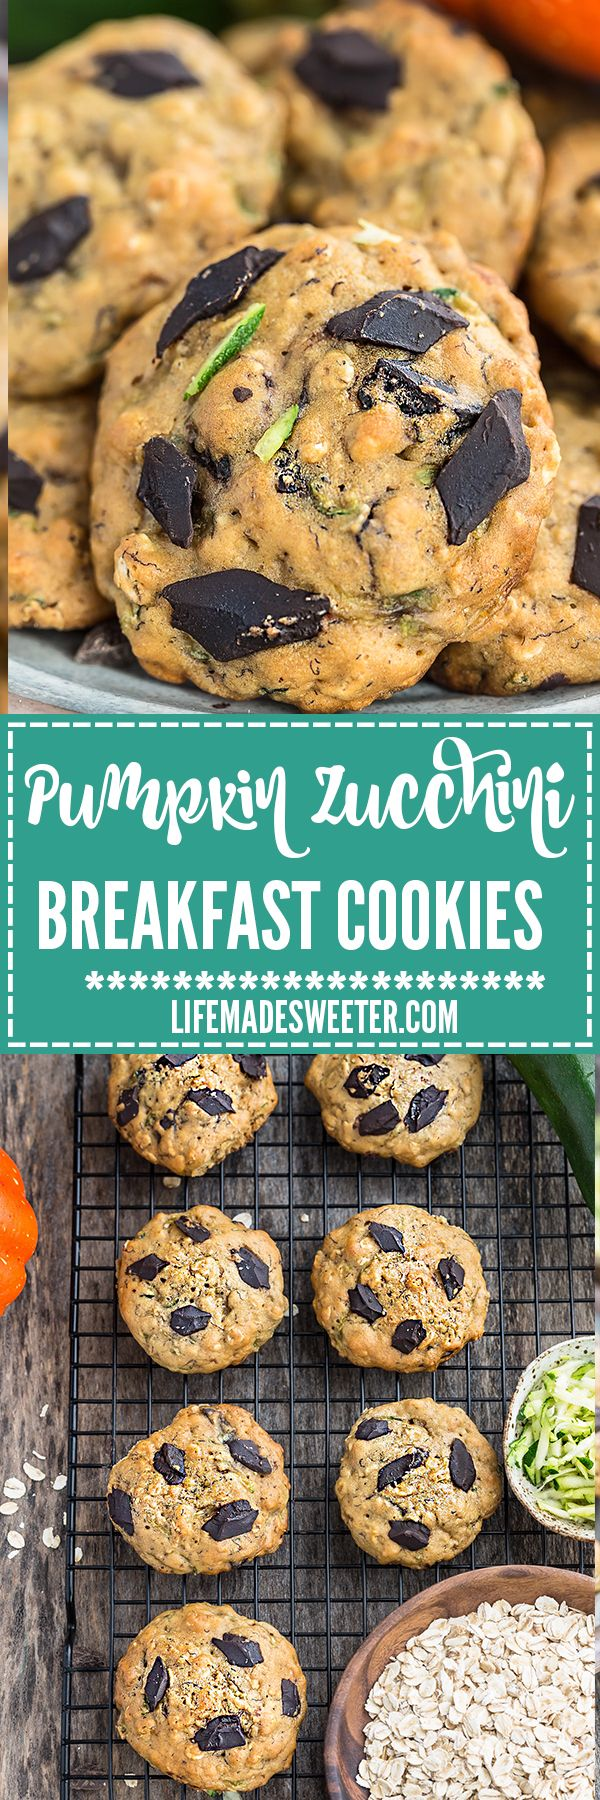 Soft and chewy flourless Zucchin Breakfast Cookies make the perfect healthy breakfast and on-the-go snack! Best of all, they're so easy to make with no mixer required. Gluten free, refined sugar free and no butter!